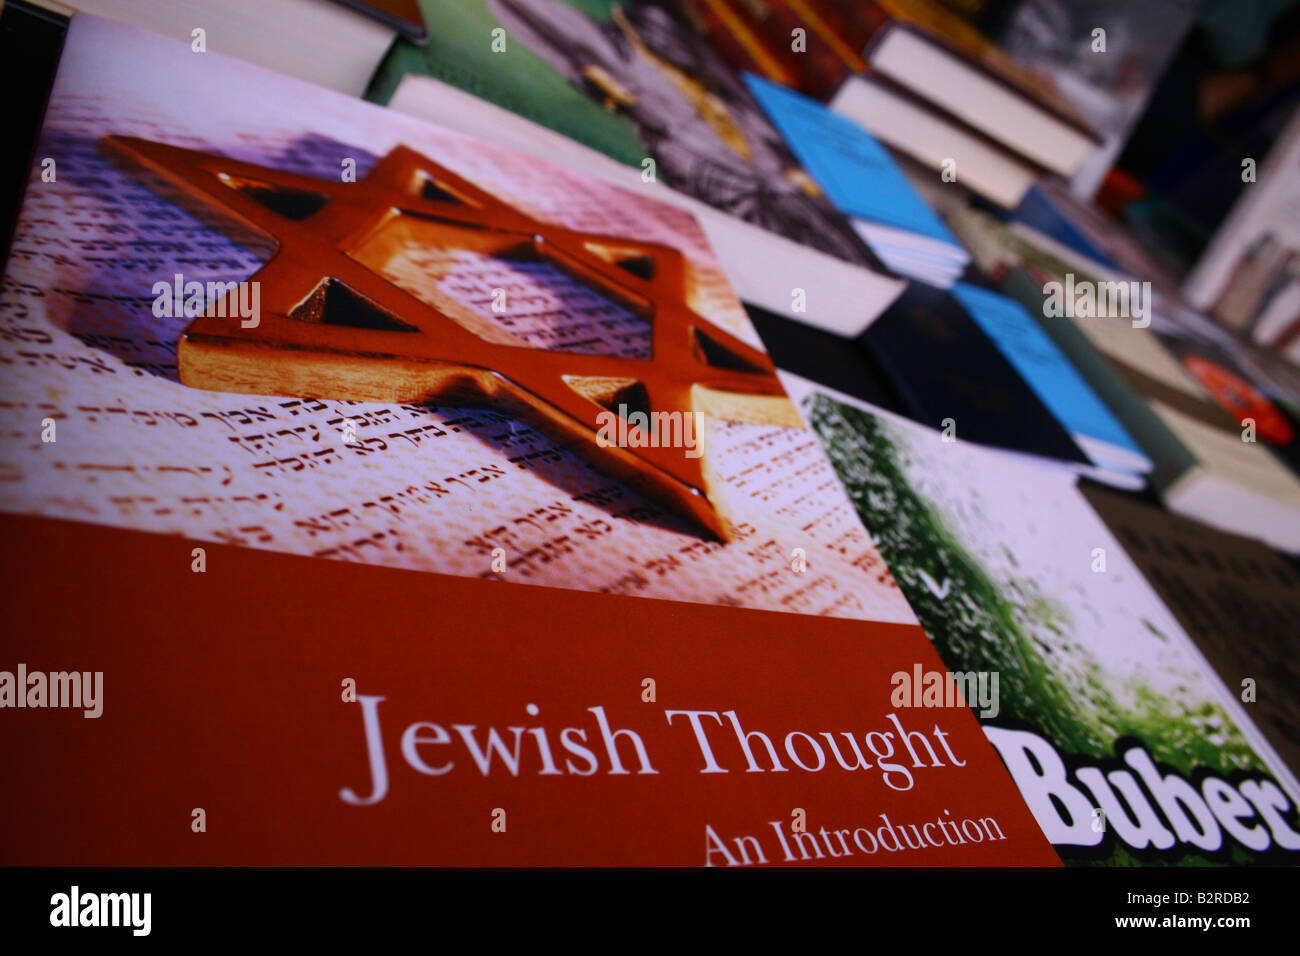 Jewish books being sold at a Market in Trafalgar Square - Stock Image